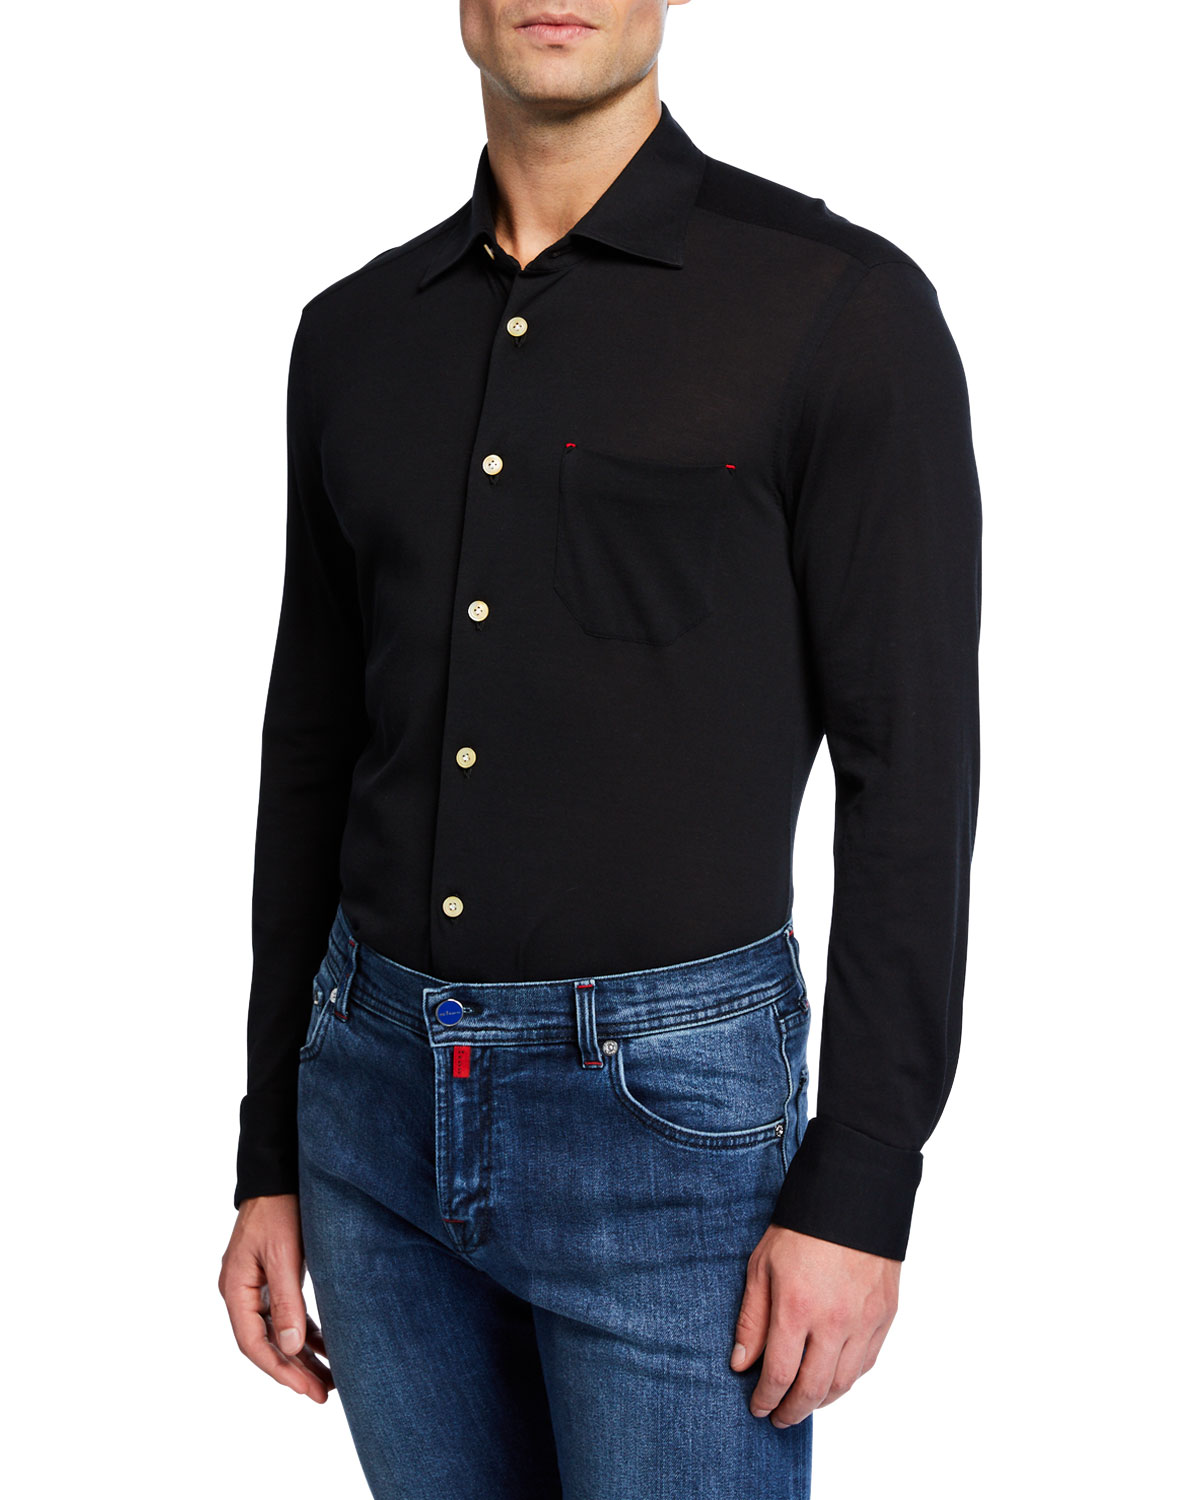 Image result for black dress shirt with jeans kiton